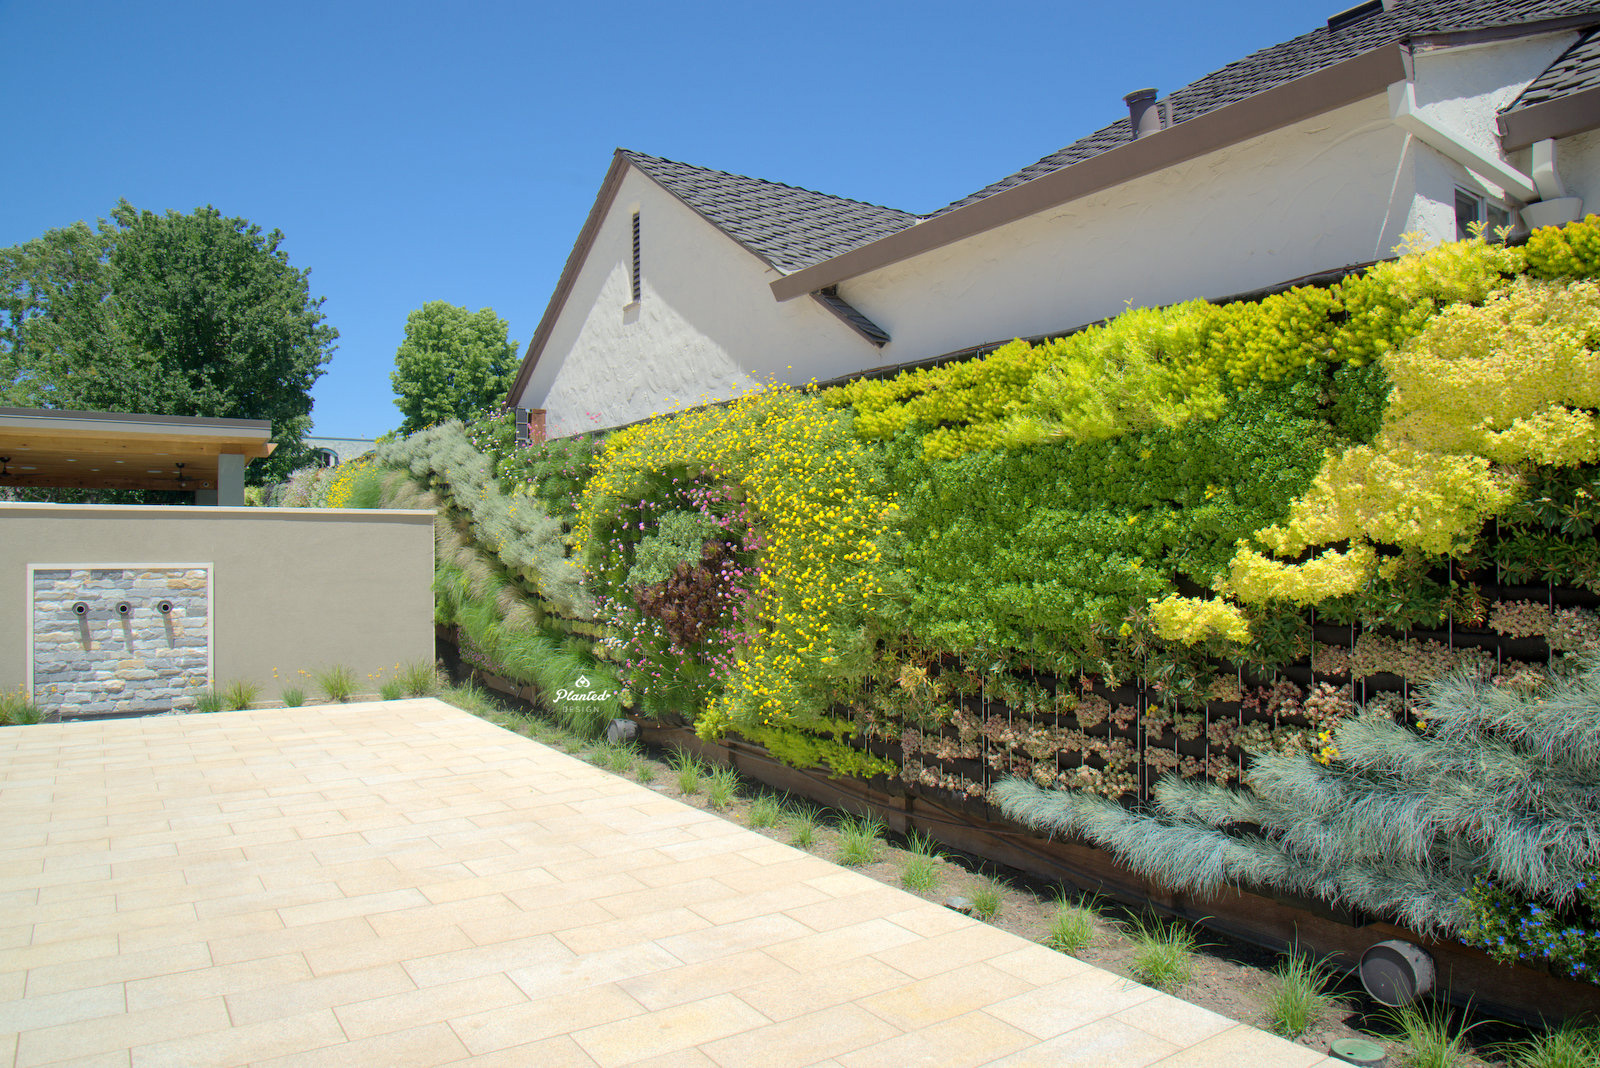 Planted-Design-Living-Wall-Pleasanton-California-24-_CJB4419.jpg